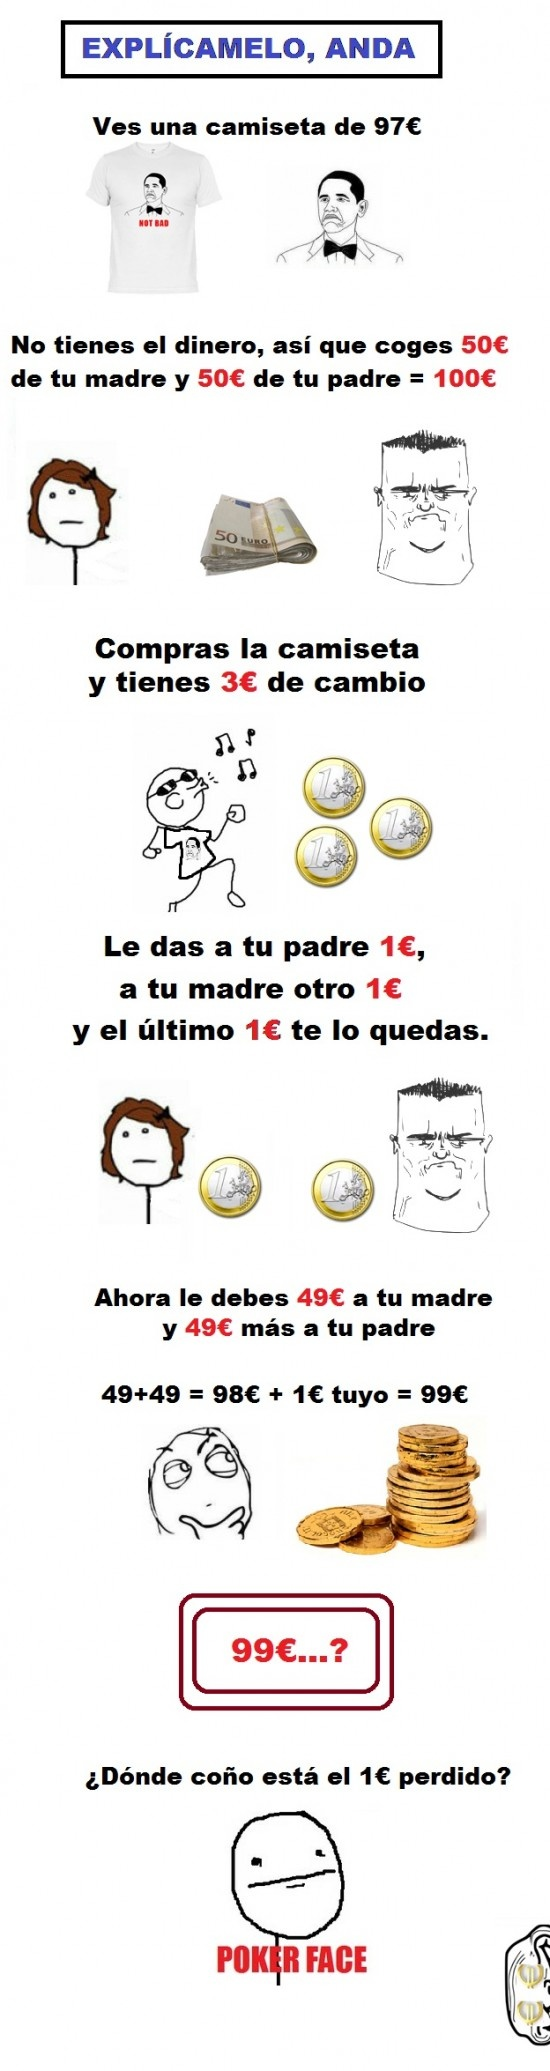 ¿Where is my euro?